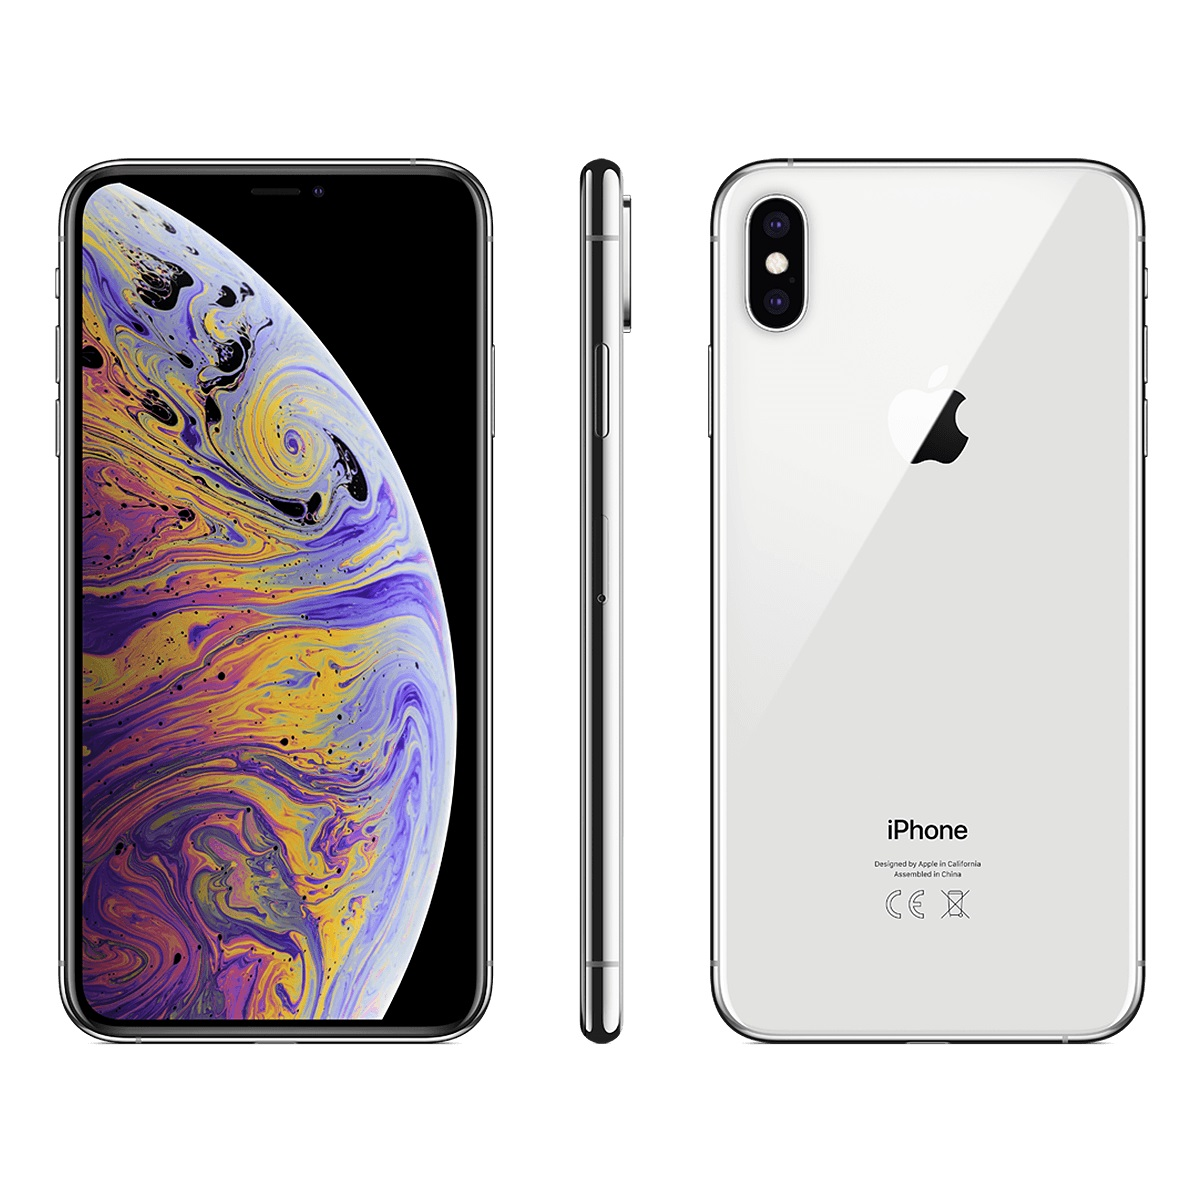 Image of Apple iPhone XS Max 256GB Dual Sim (2 nano-SIM) SIM FREE/ UNLOCKED A2104 - Silver